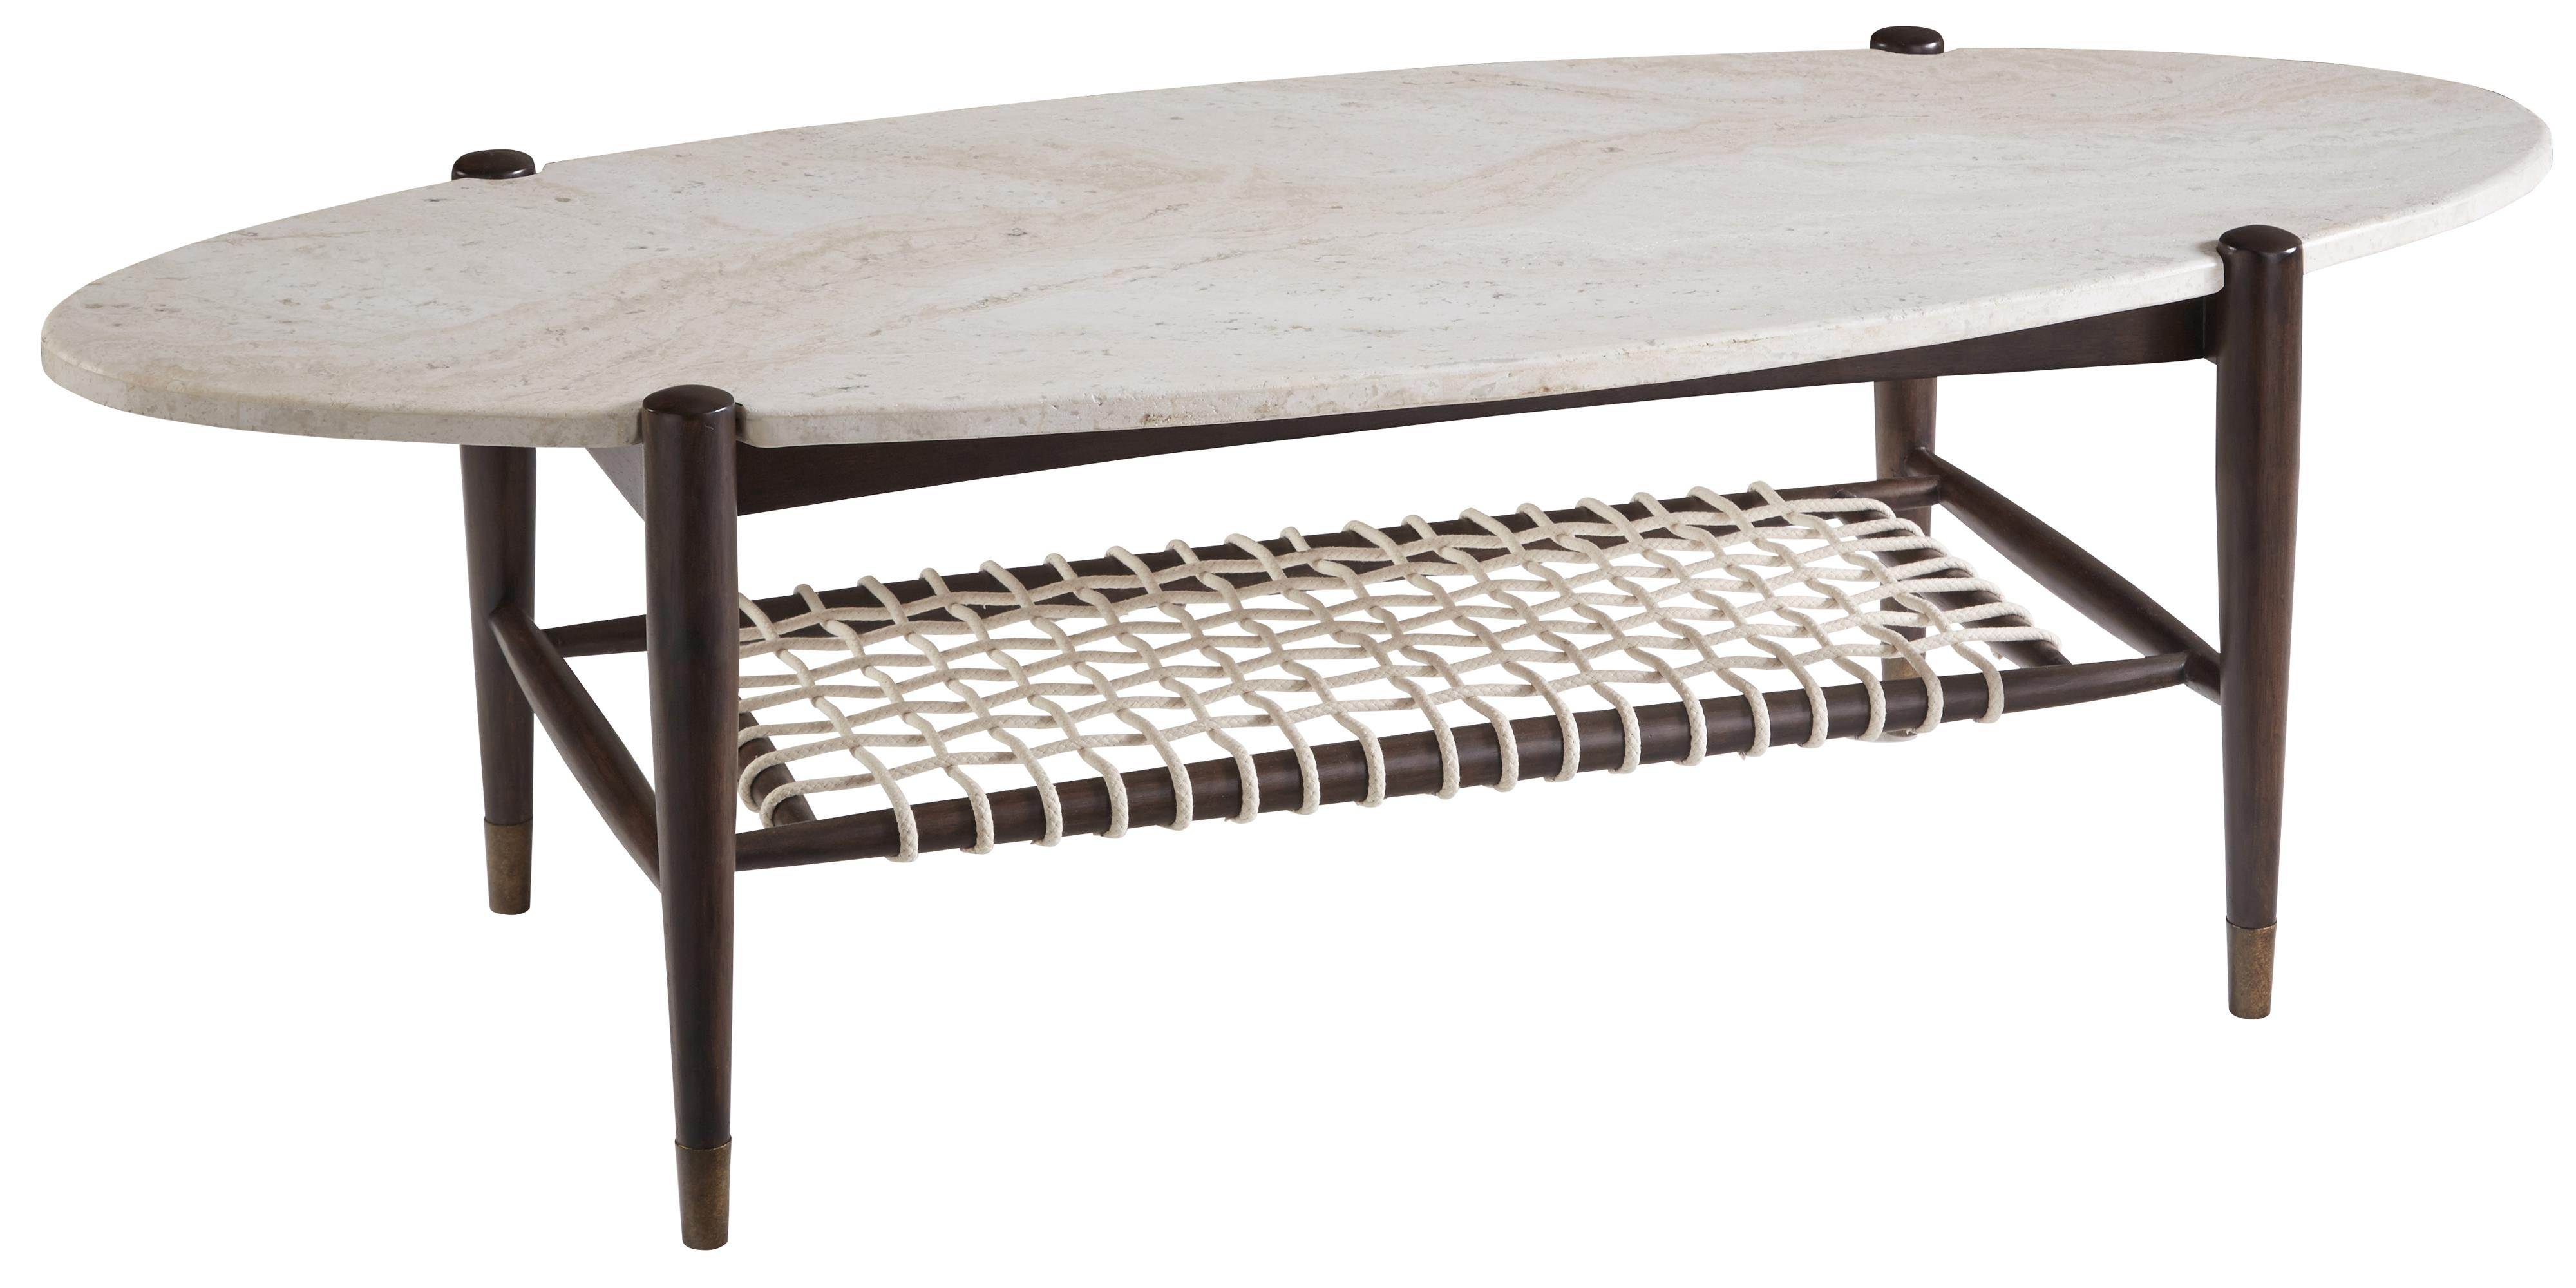 Belfort Signature Urban Treasures 14th and U Oval Cocktail Table - Item Number: 223382-1812